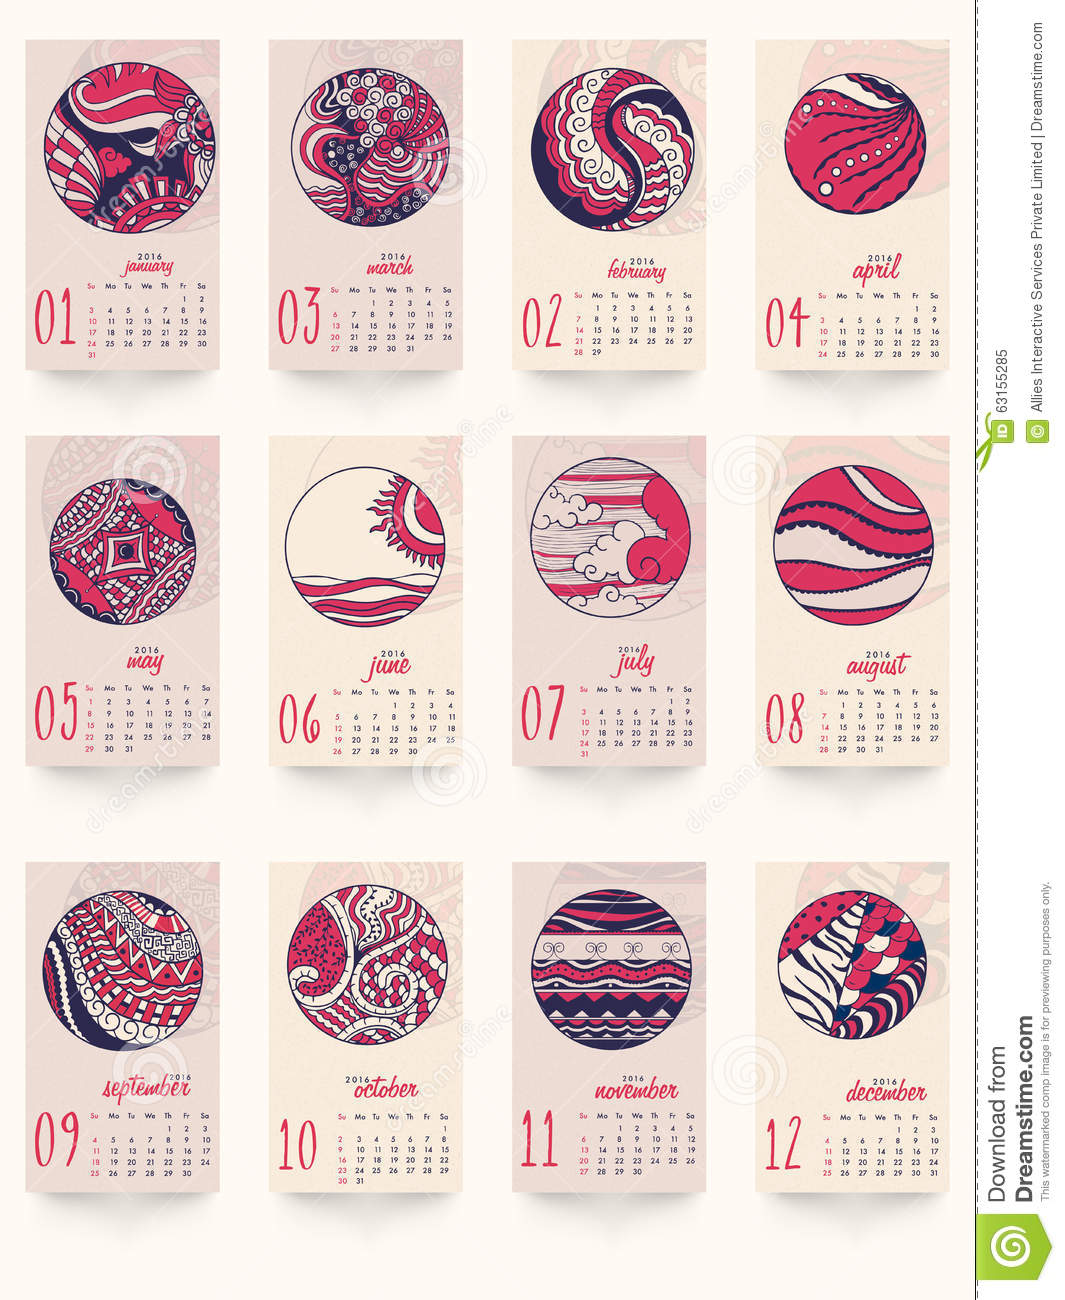 Monthly Calendar Design Creative : Creative yearly calendar for new year celebration